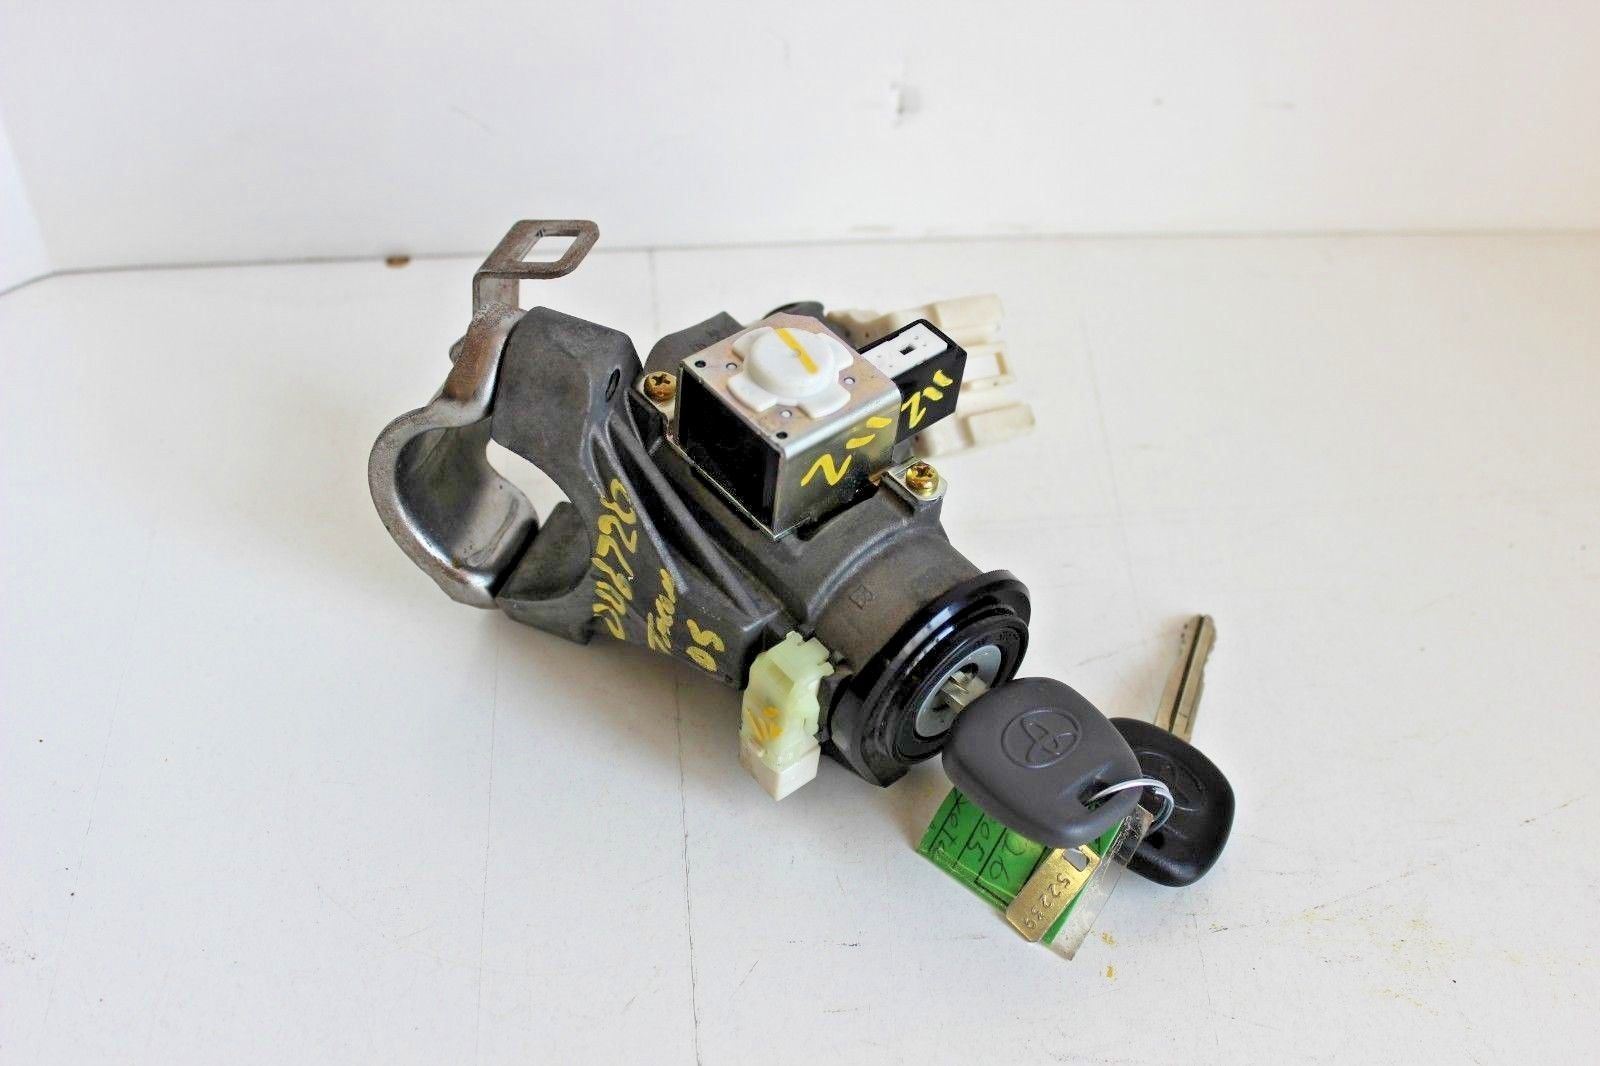 2007 Tacoma Ignition Switch Wiring : downtown import auto and truck recyclers 2005 2015 ~ A.2002-acura-tl-radio.info Haus und Dekorationen